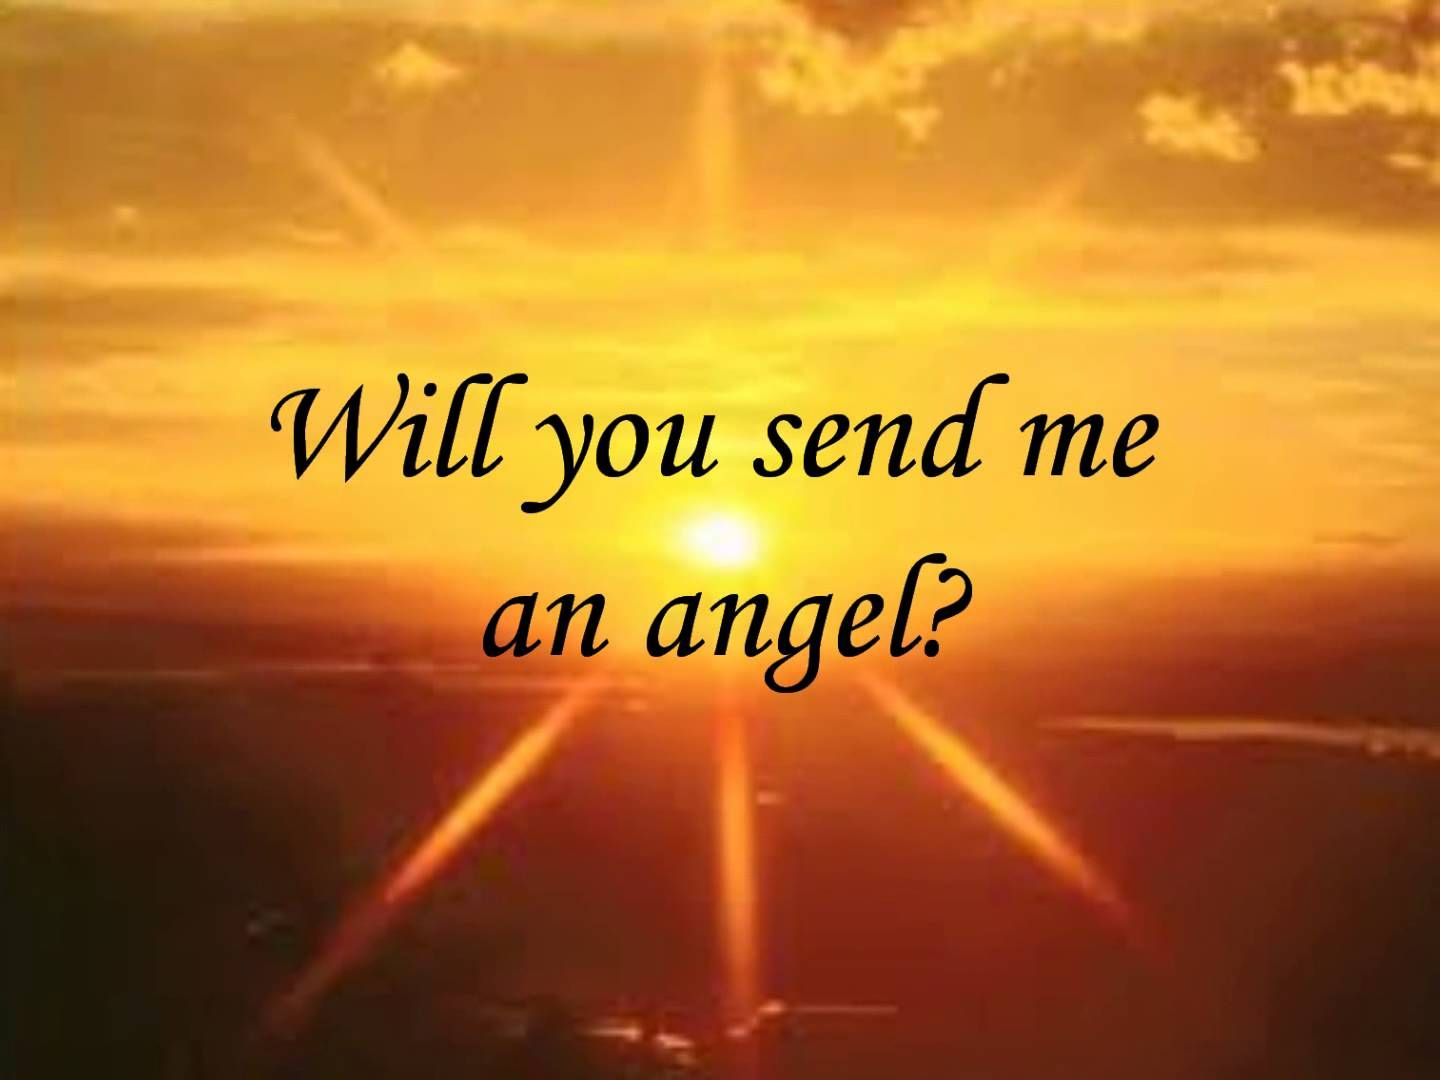 Send Me A Angel By Scorpions This Song Is So Sad But So